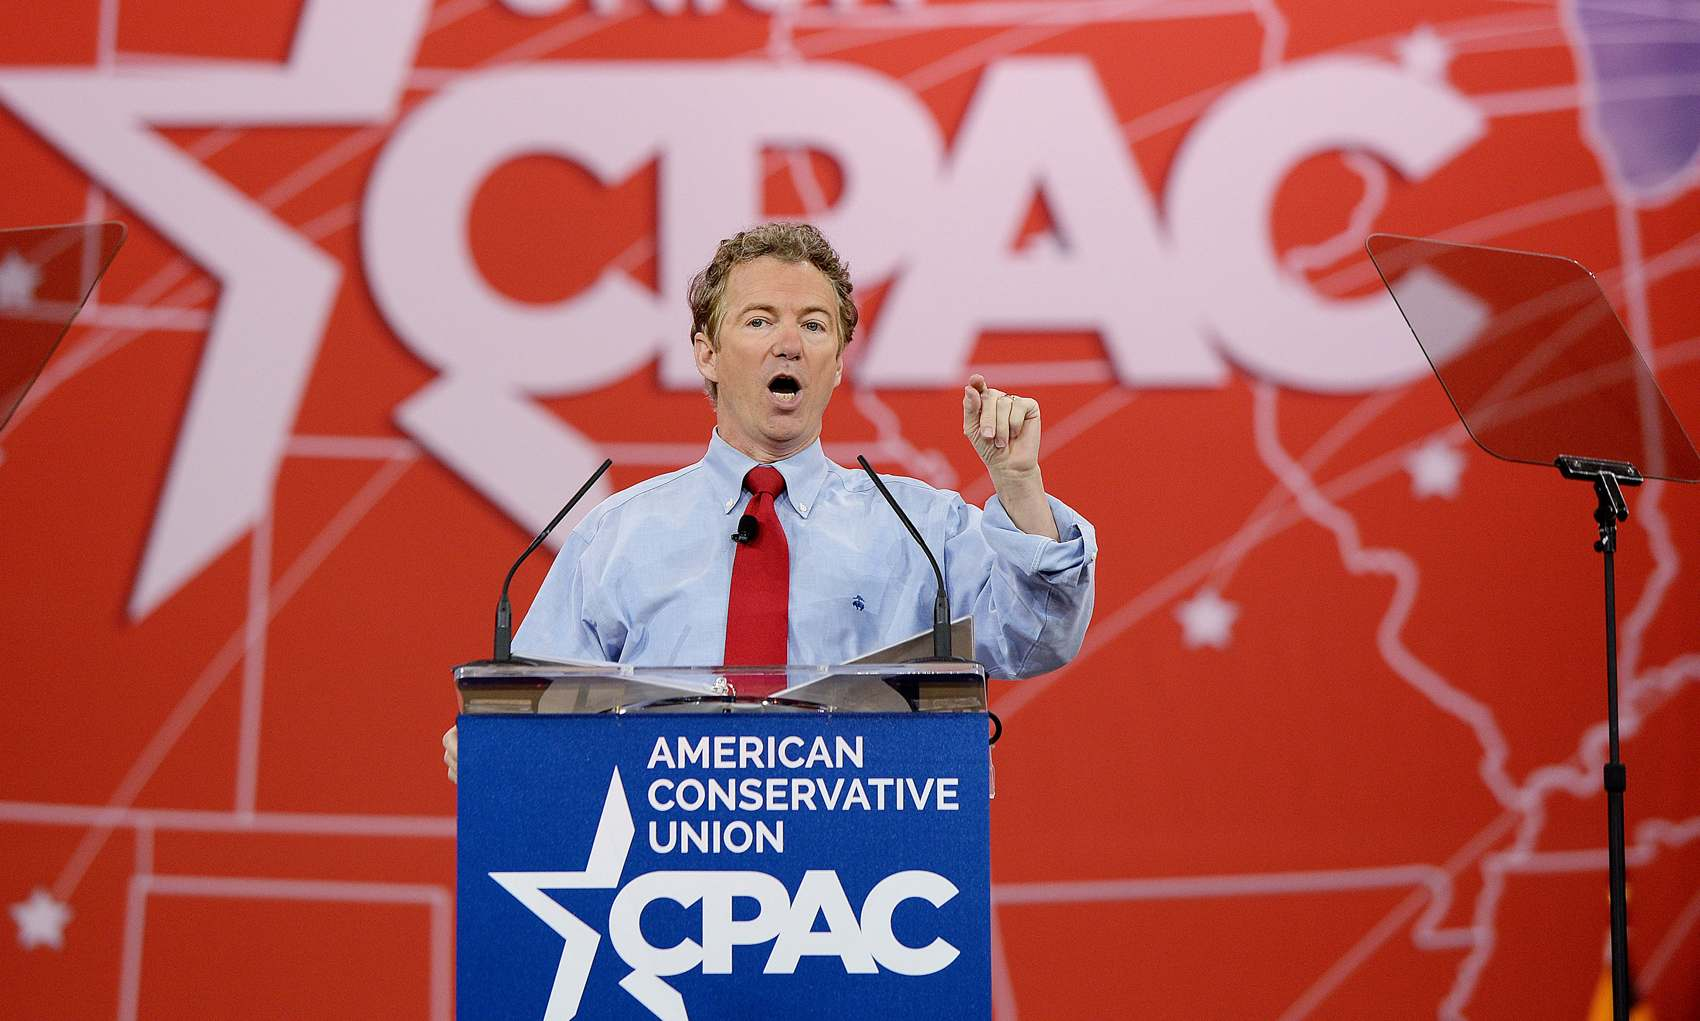 politifact-photos-rand_cpac_FINAL